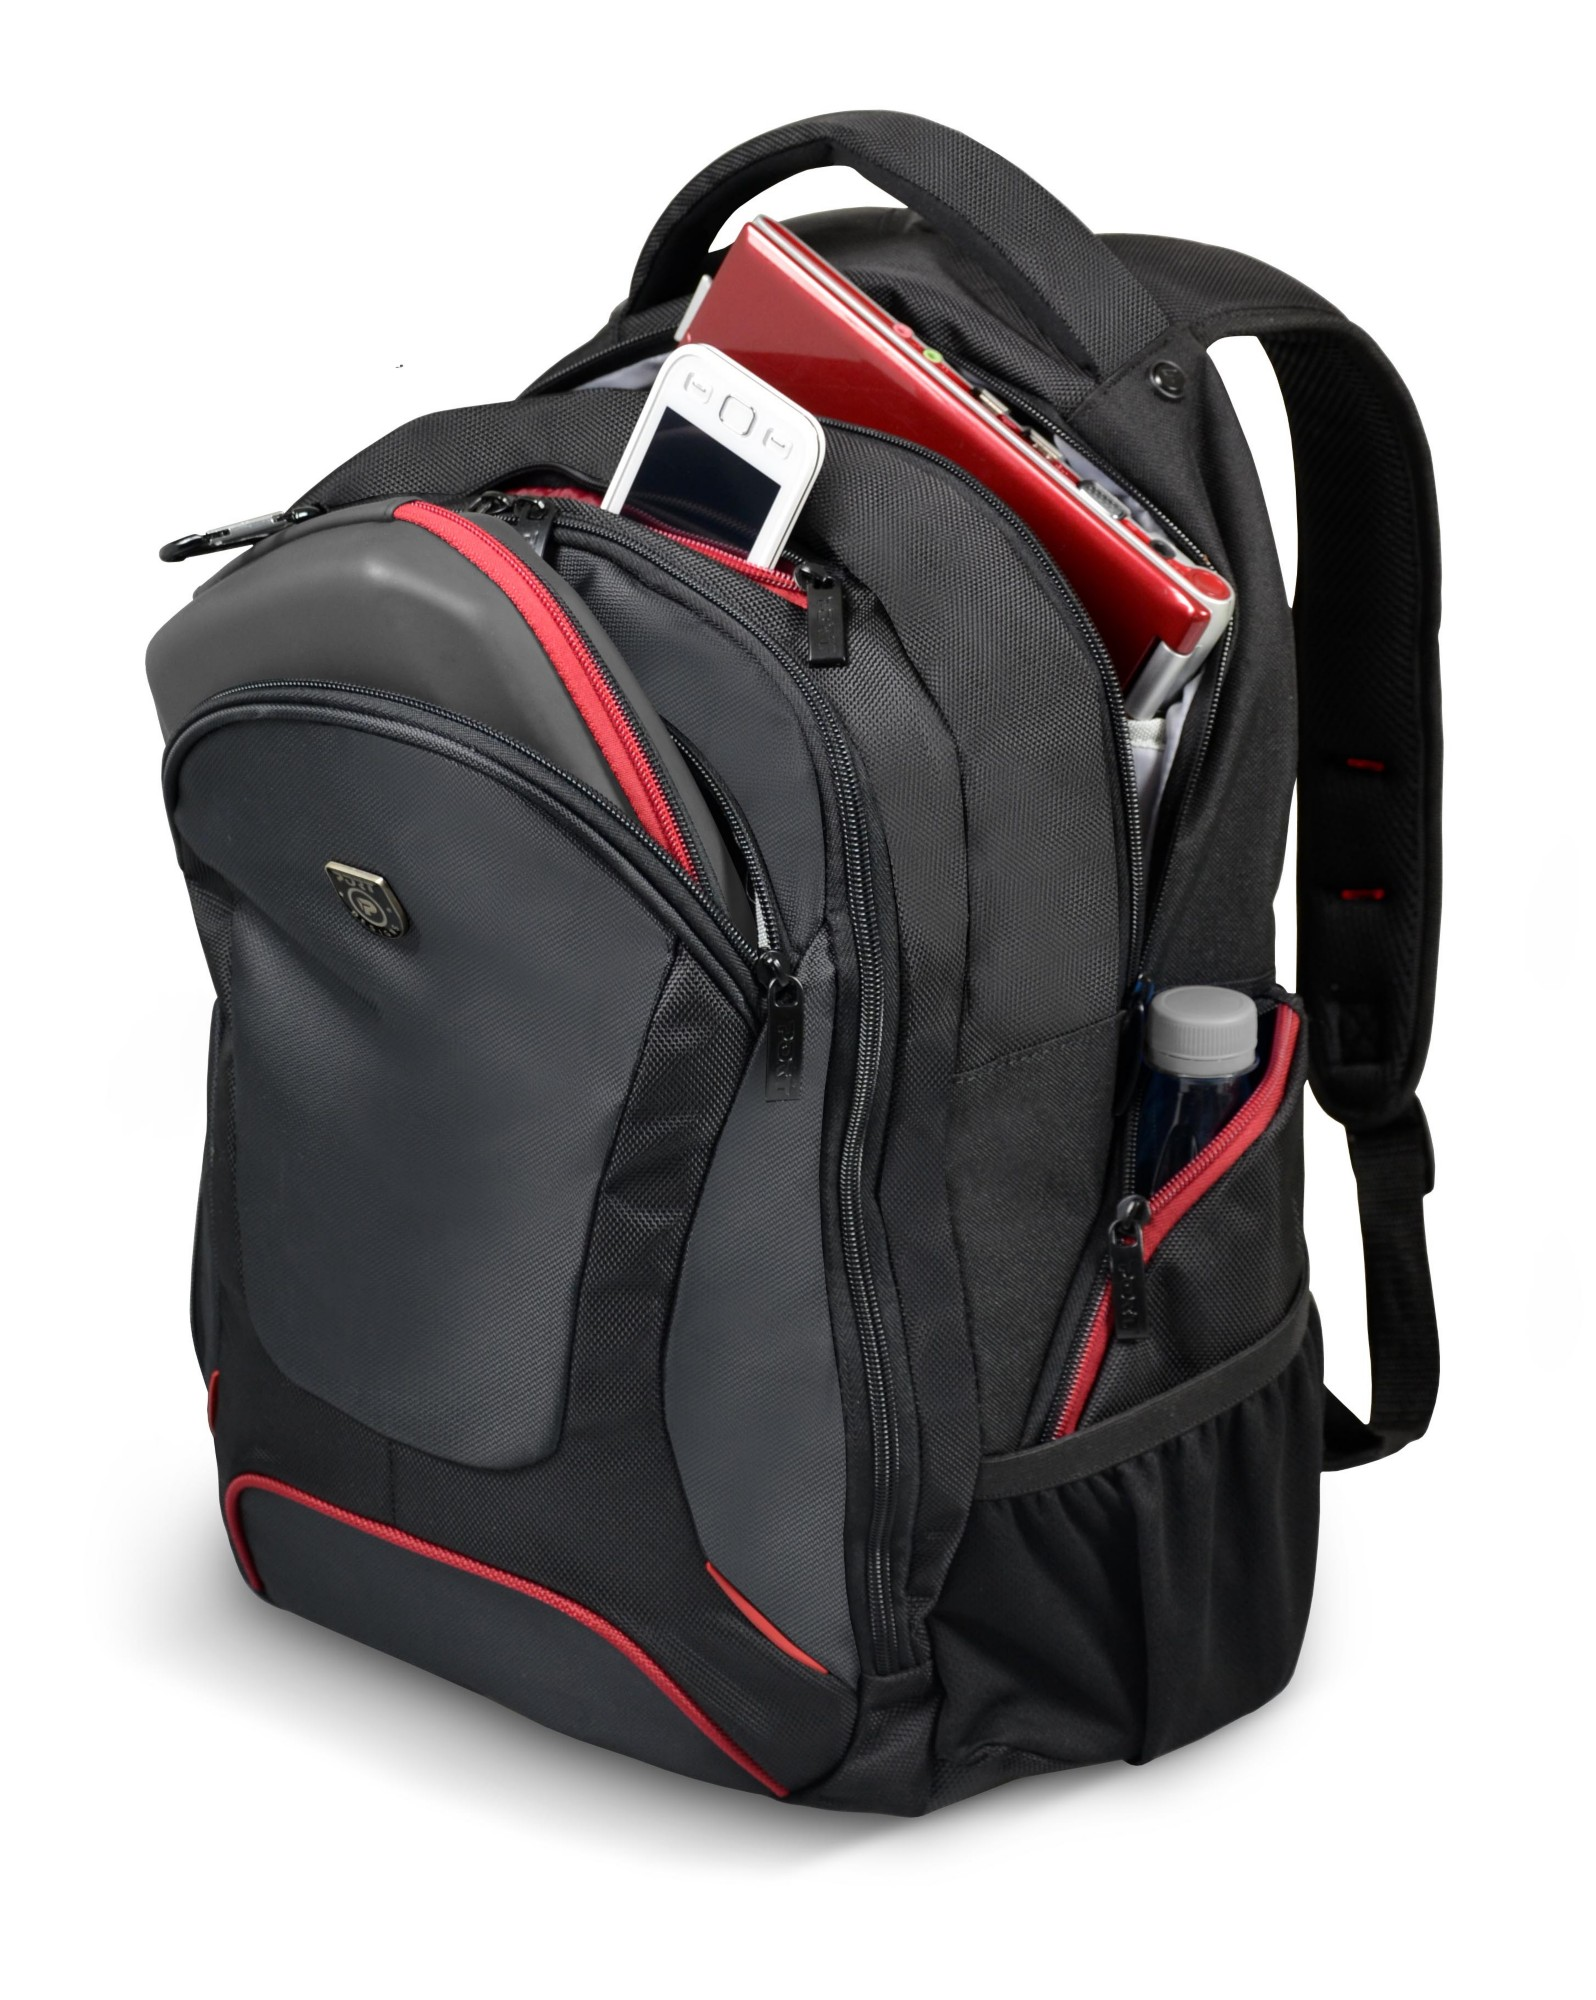 PORT DESIGNS 160511 A PRODUCT- THE COURCHEVEL IS BACKPACK DESIGN- AVAILABLE IN BOTH 15.6 AND 17.3 VARIANTS THIS T